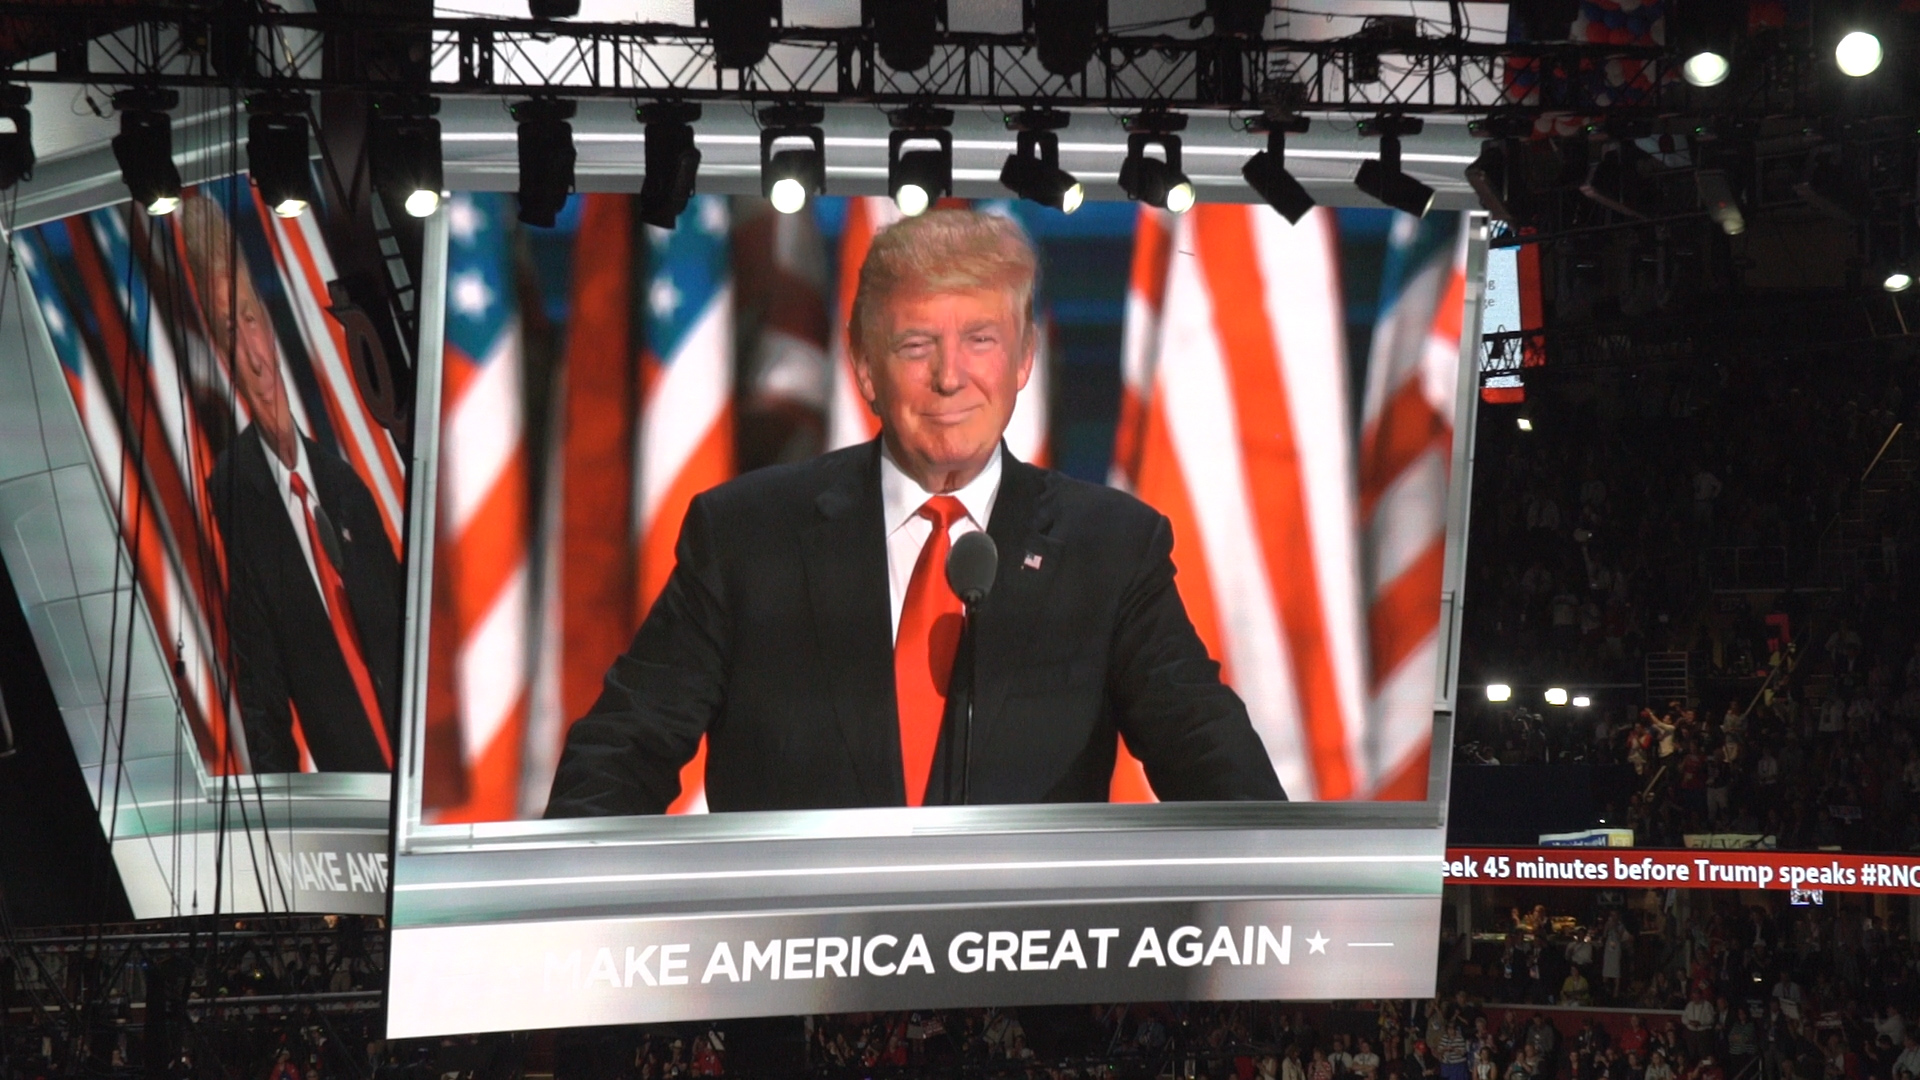 Republican presidential candidate Donald Trump accepts the GOP nomination at the Republican National Convention in Cleveland, OH.